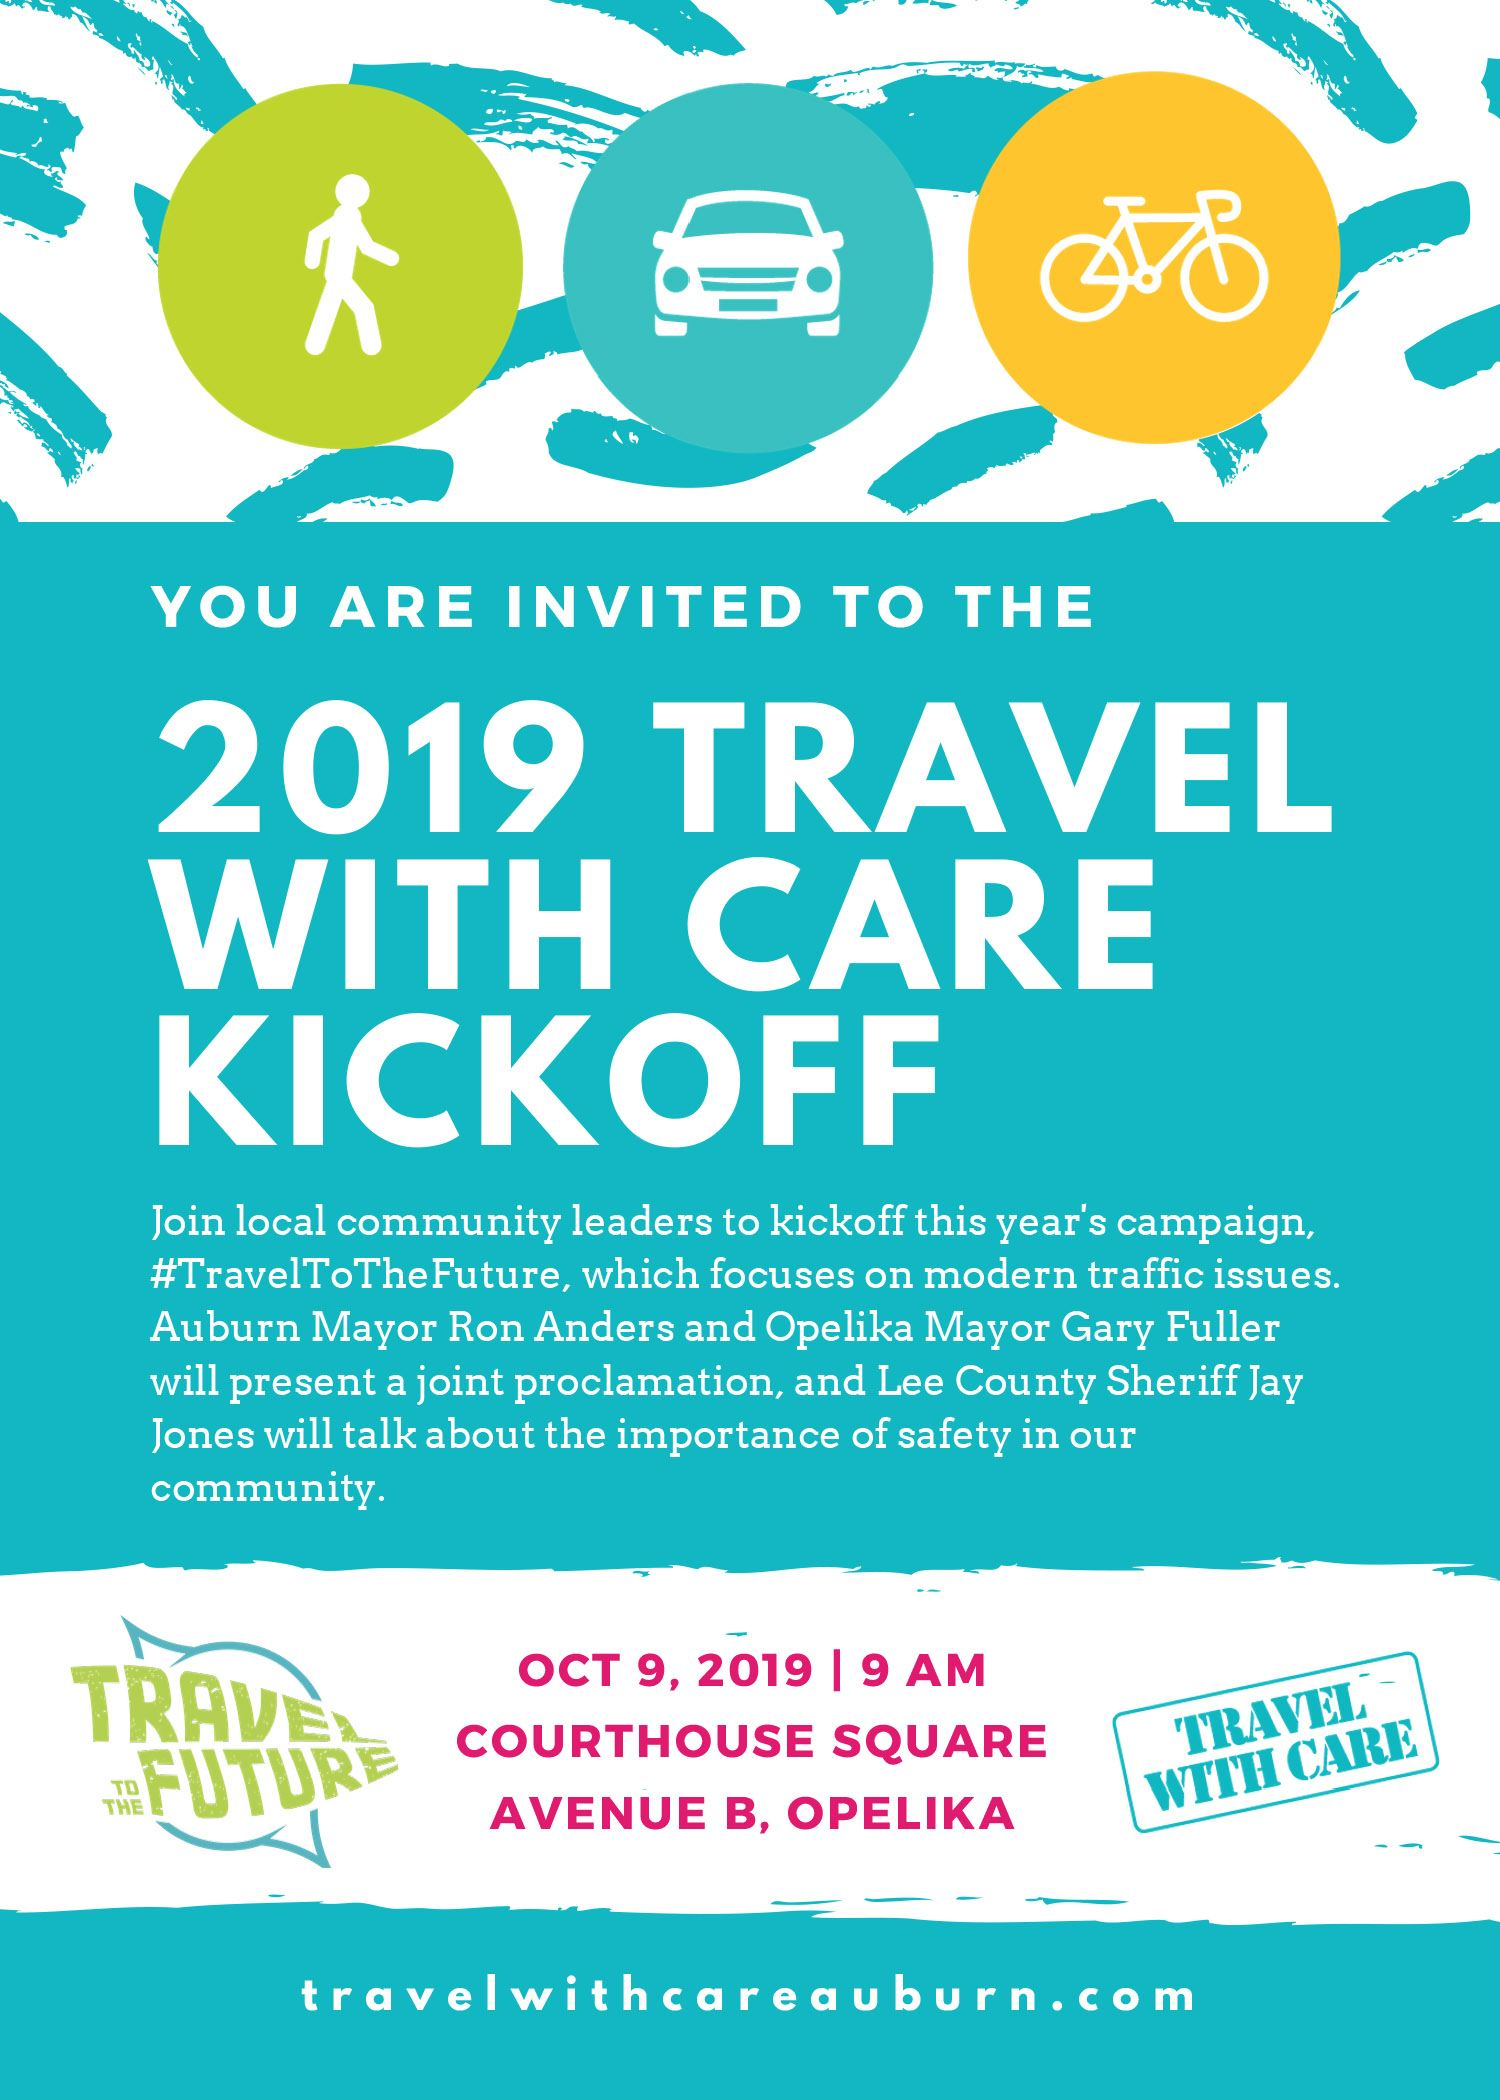 TWC 2019 Kickoff Invitation